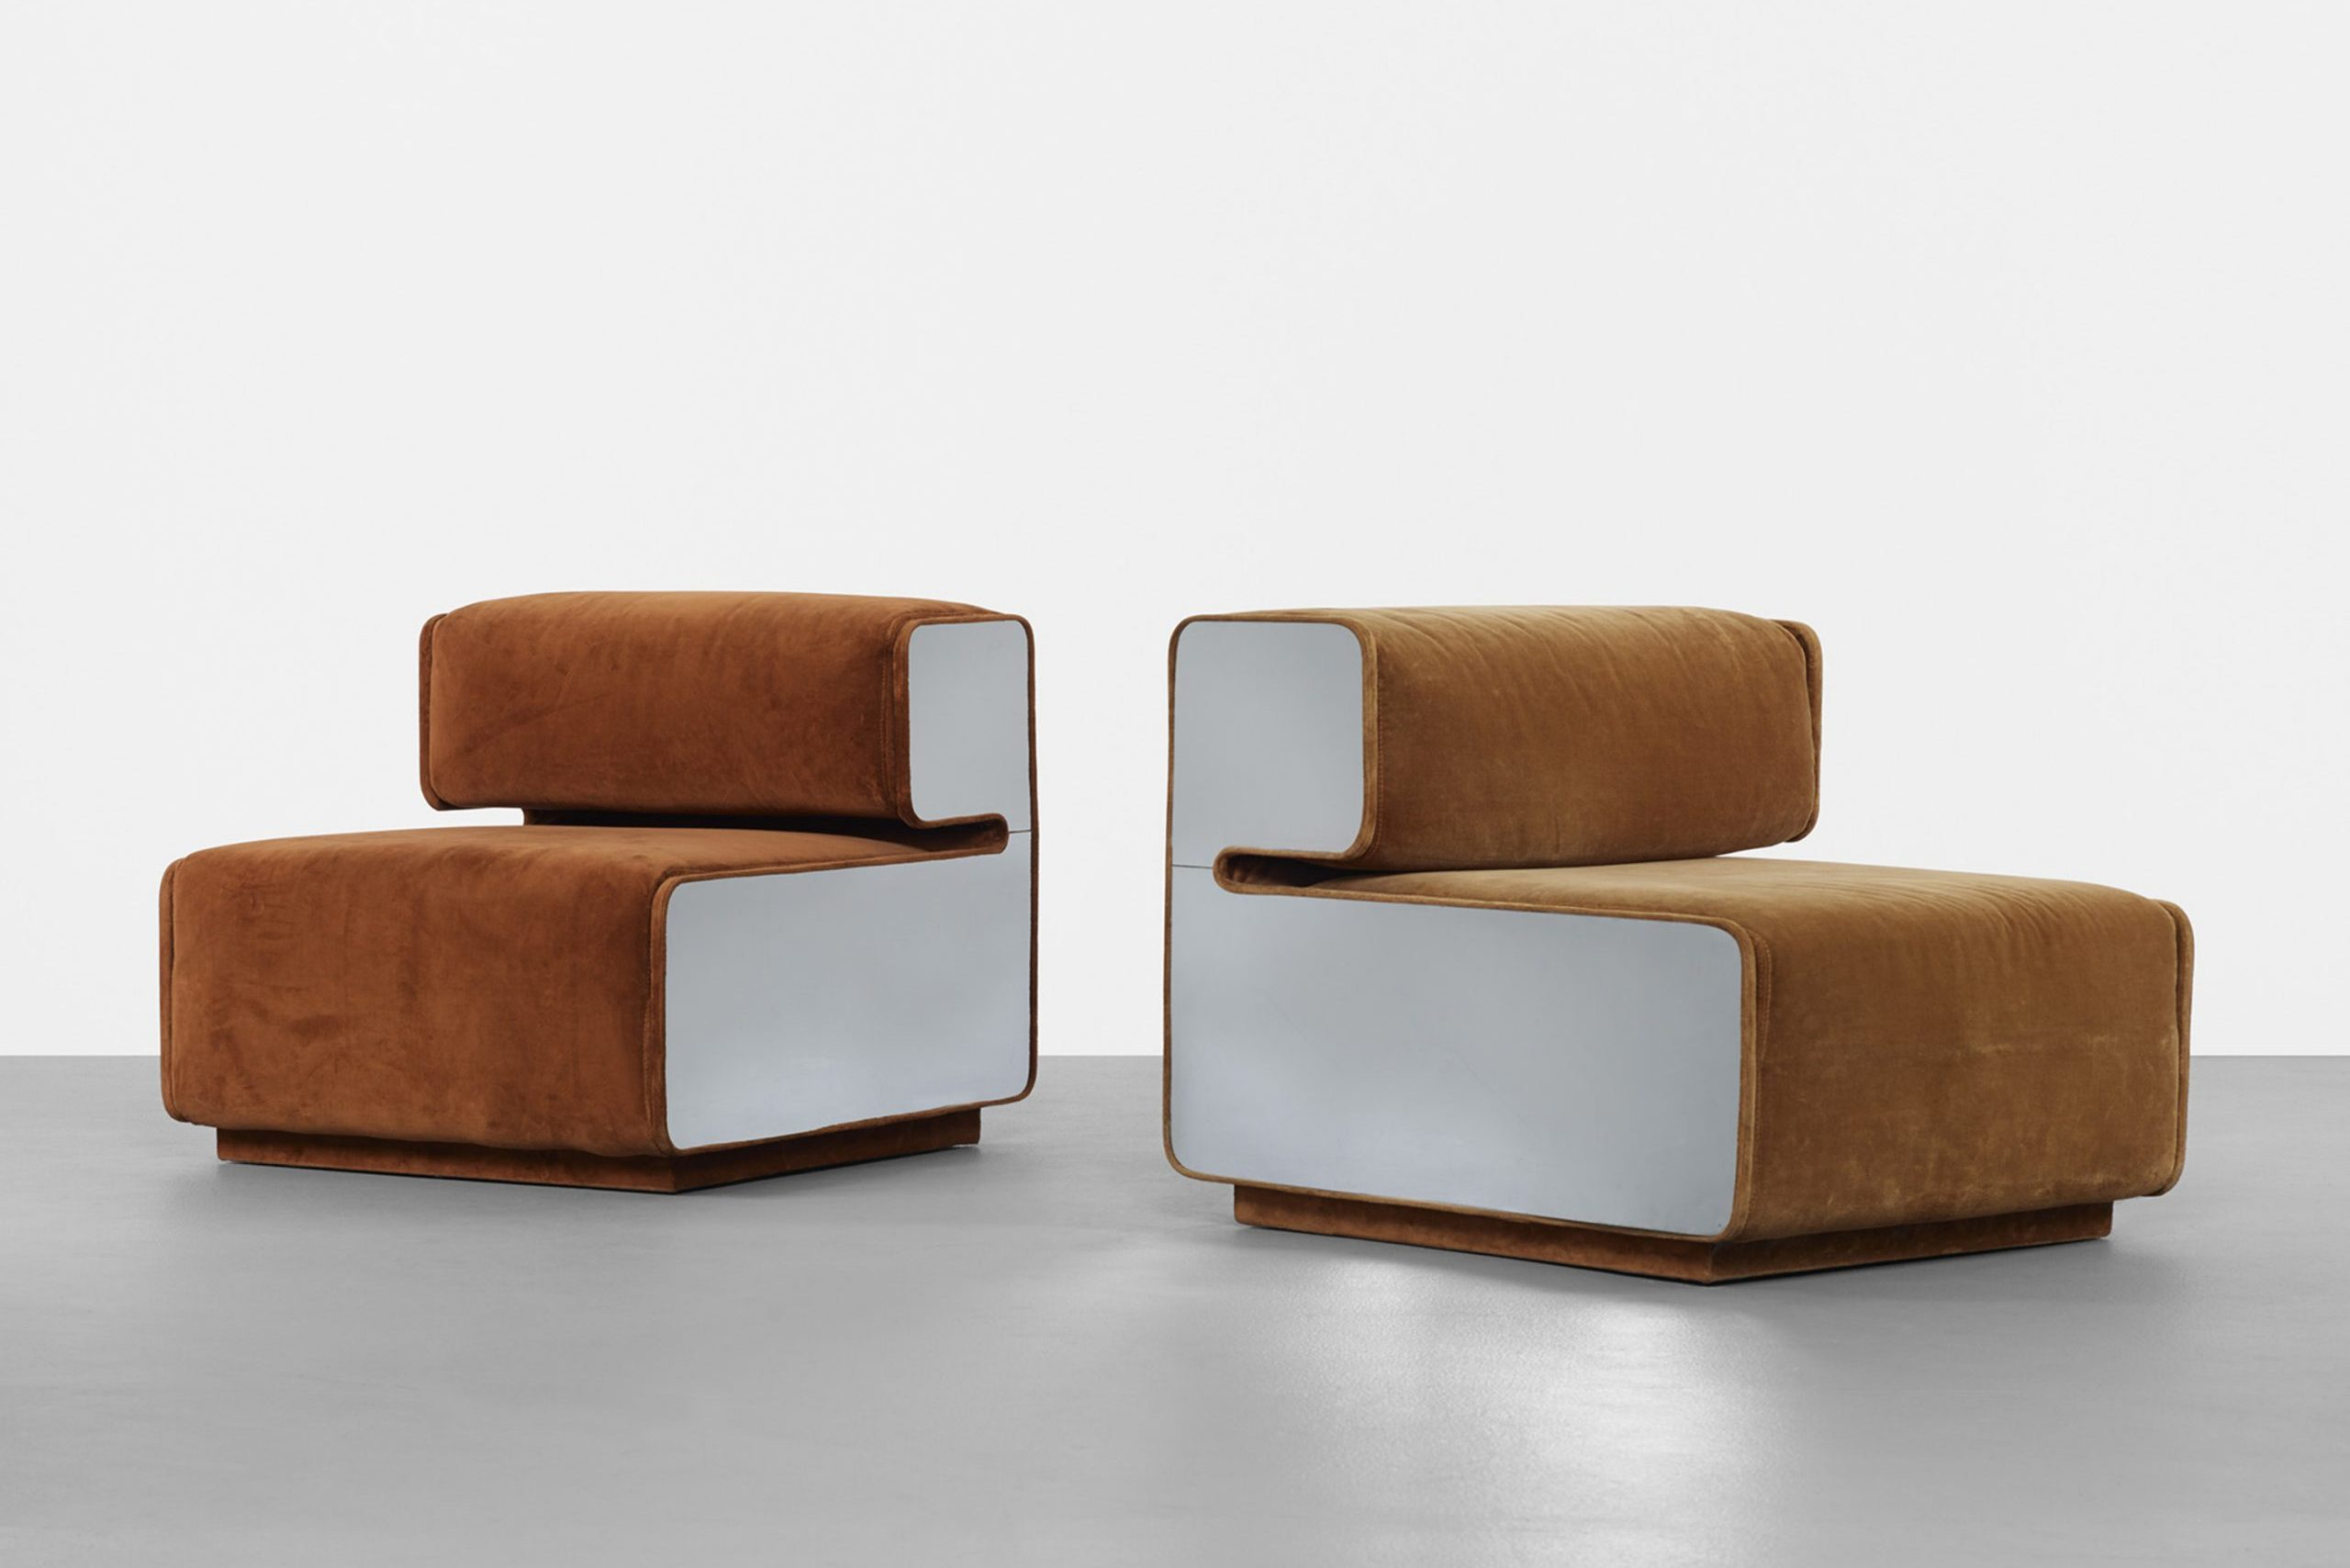 Pierre Cardin lounge chairs (1970)